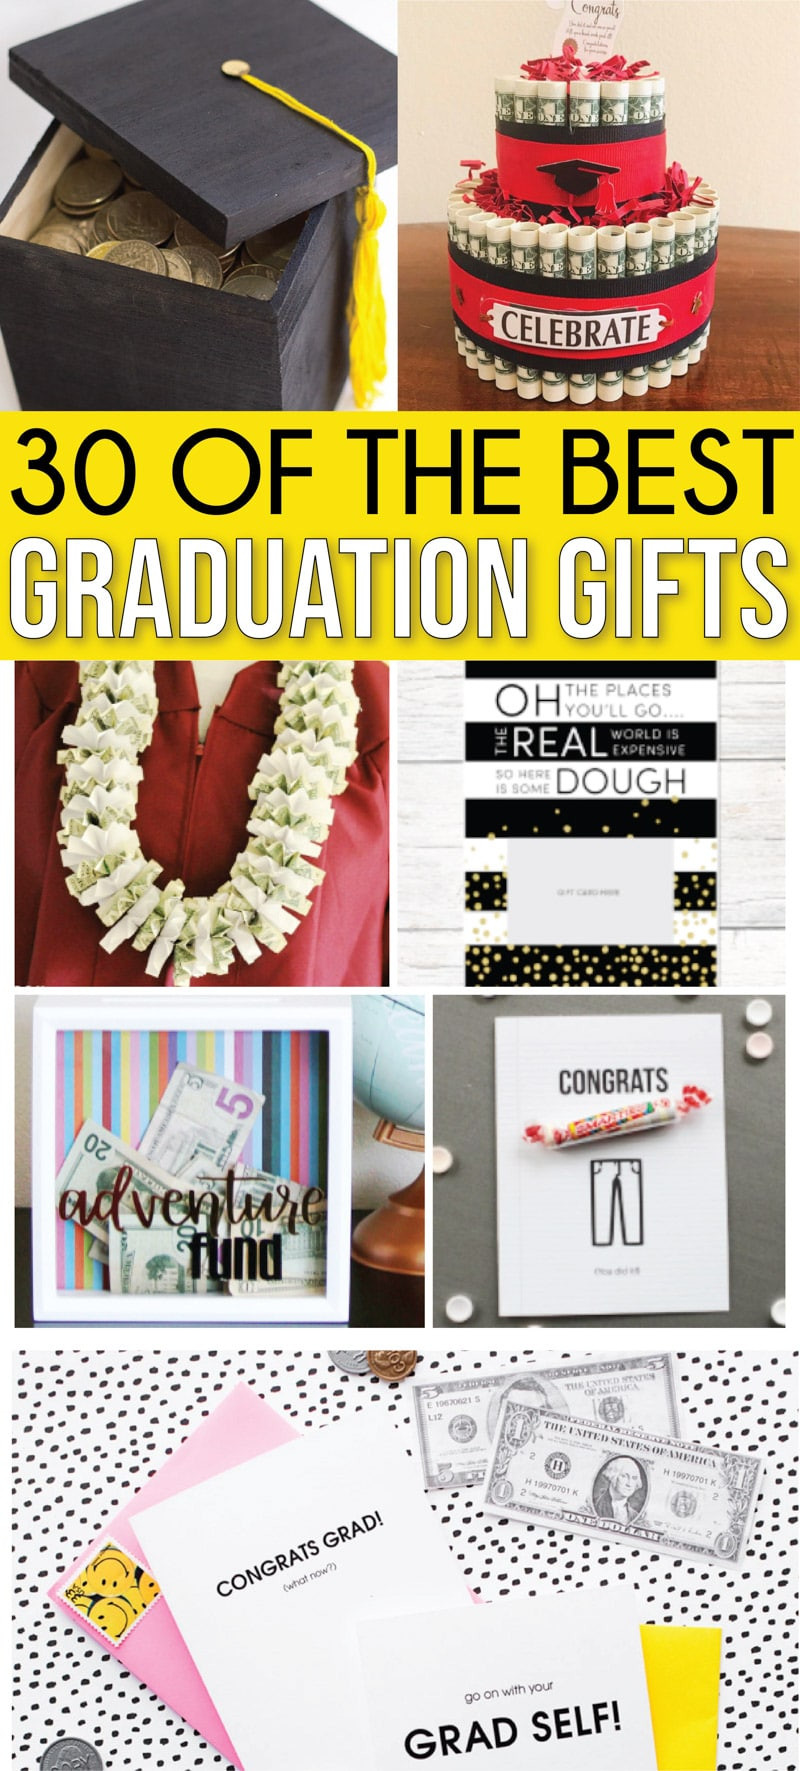 Phd Graduation Gift Ideas For Him  30 Awesome High School Graduation Gifts Graduates Actually